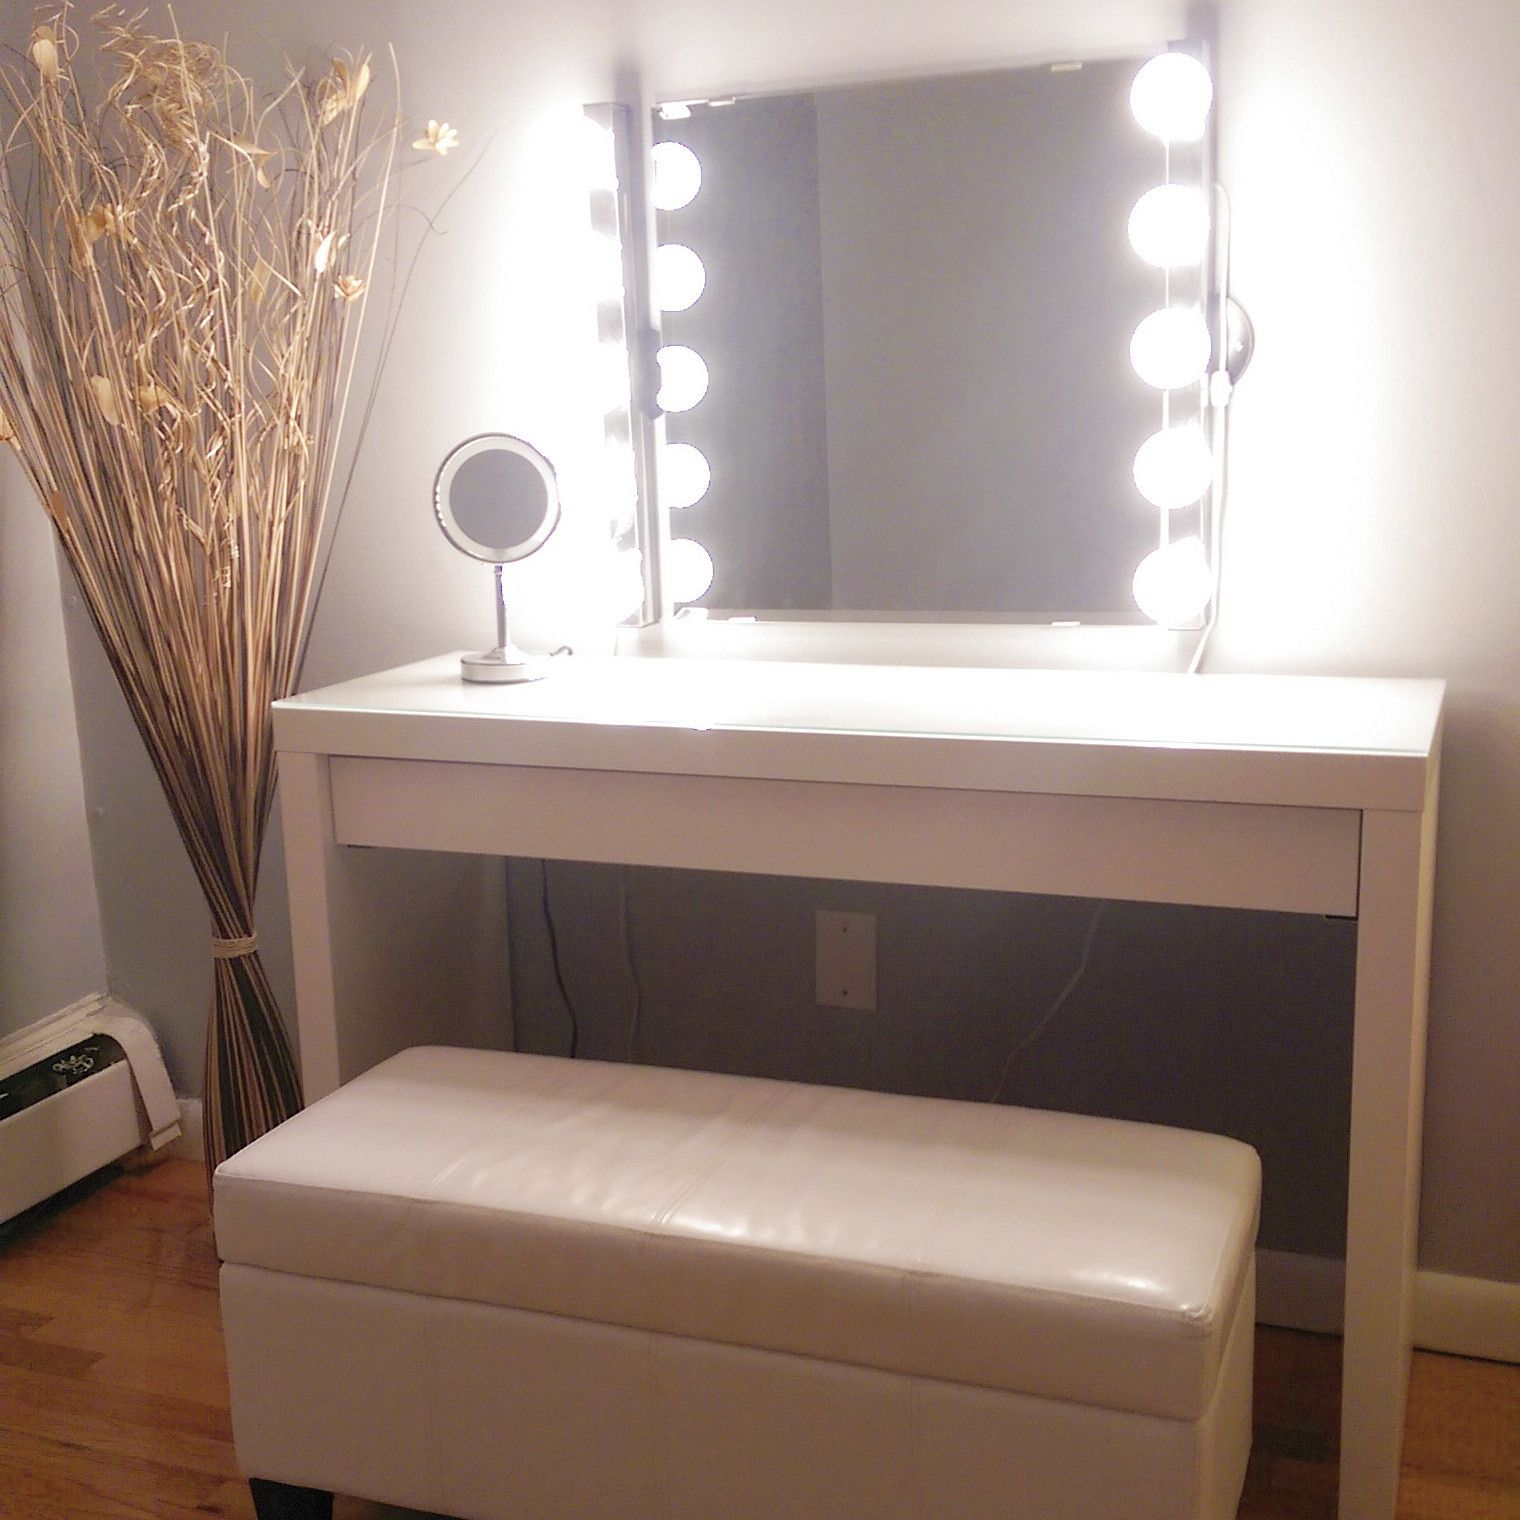 Jessica Furniture Makeup Vanity With Lights : love the bench, wall mirror is Kolja mirror from Ikea, lights are Musik from Ikea home ...